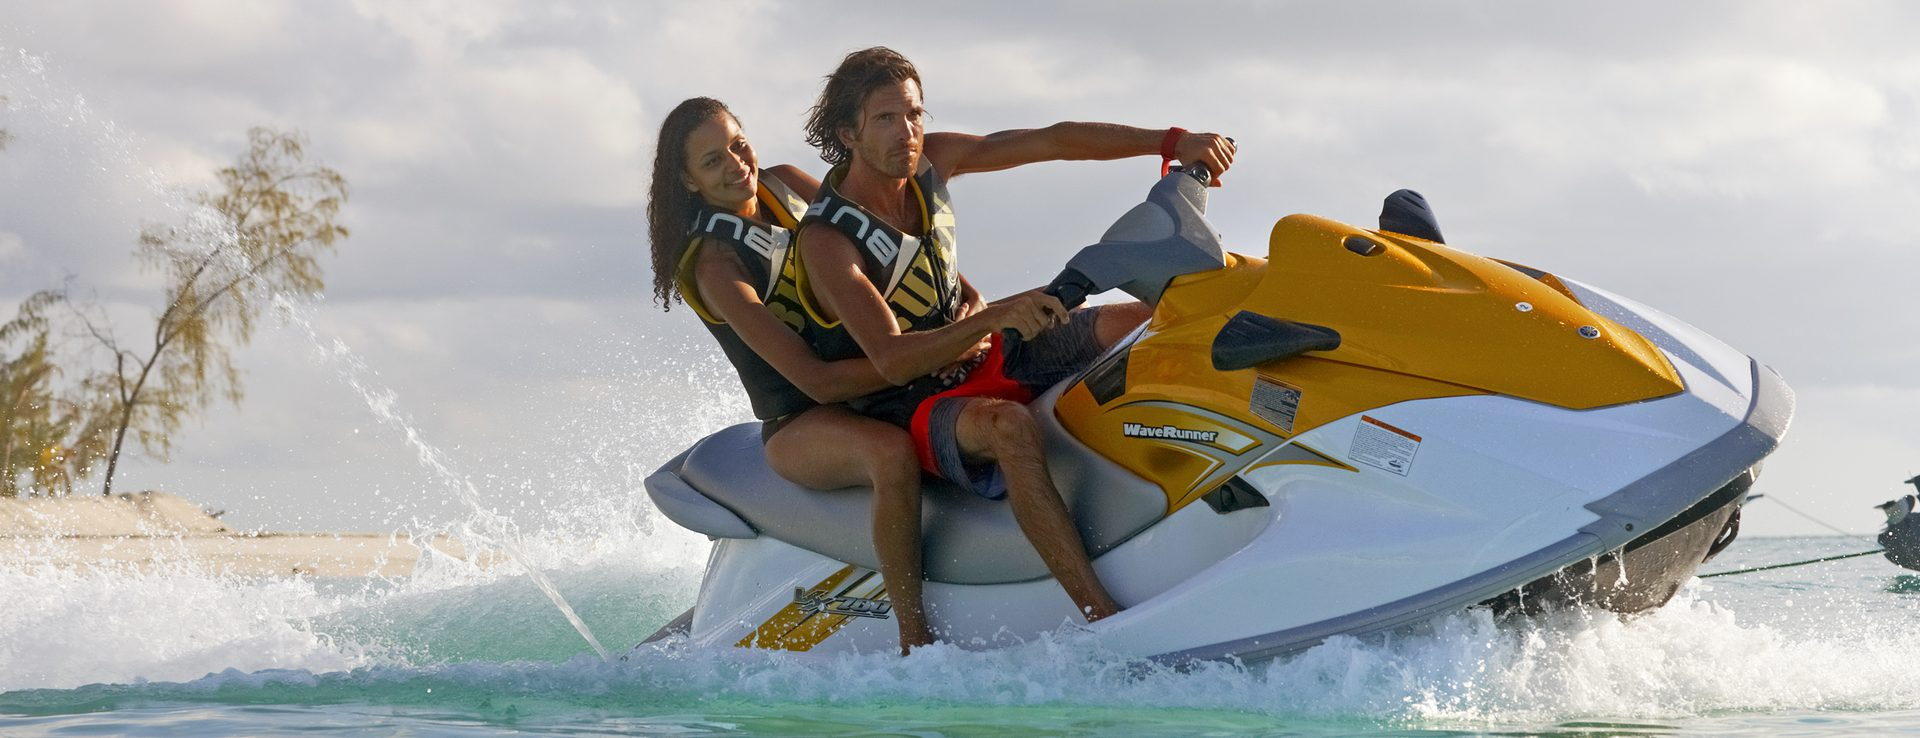 Water Sports Image 1